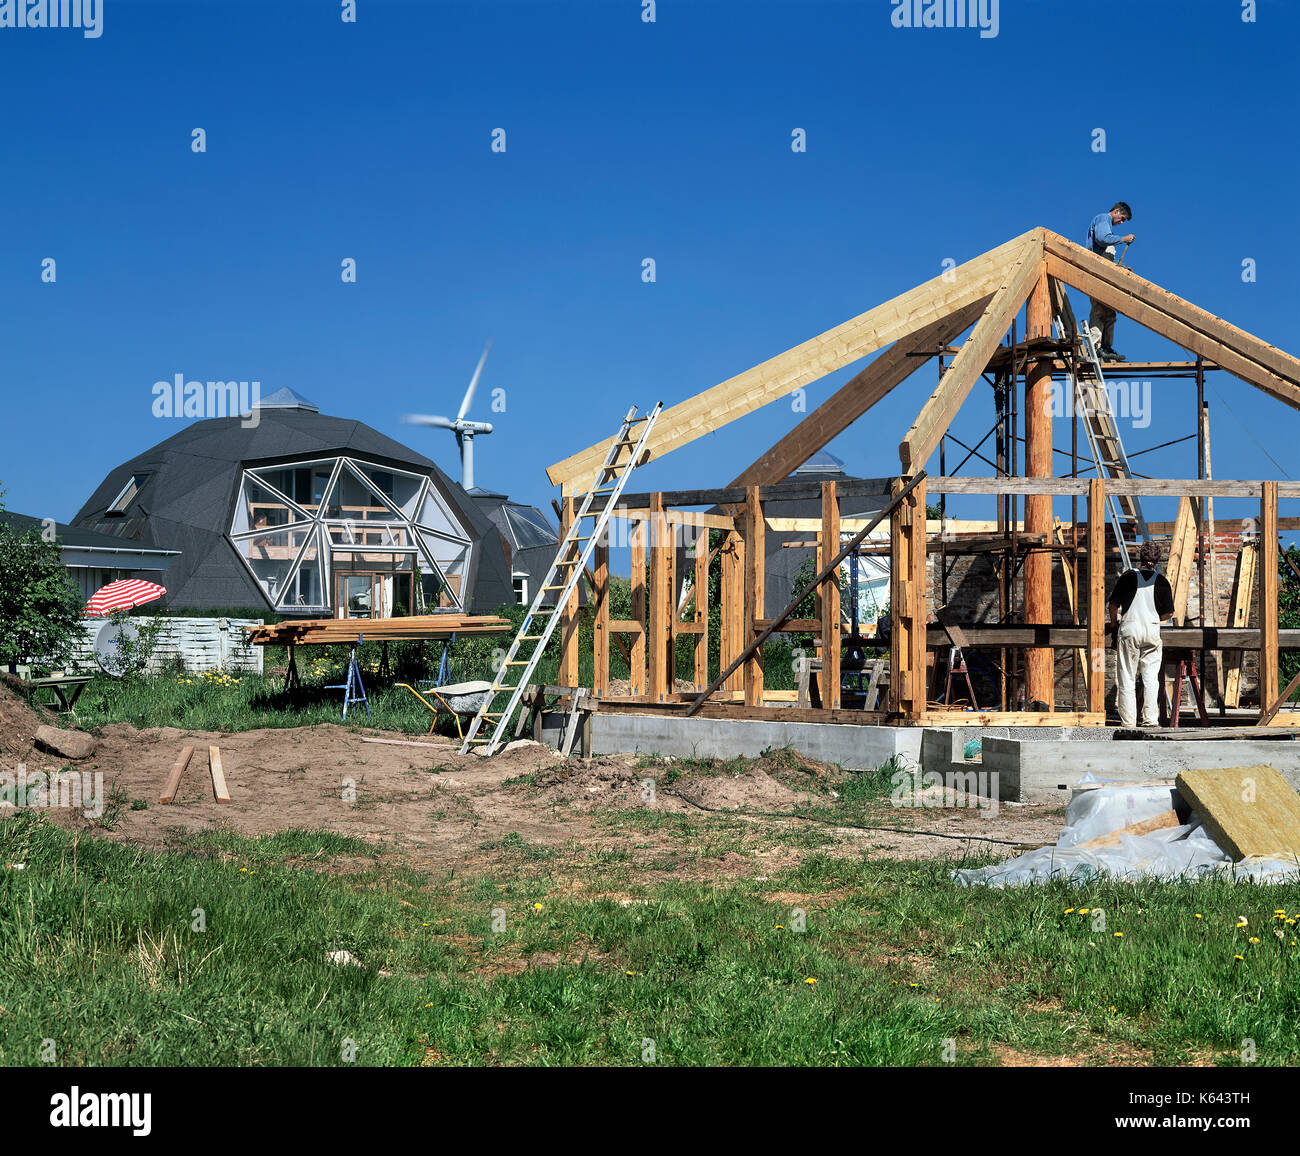 Erecting a wooden frame for a dome